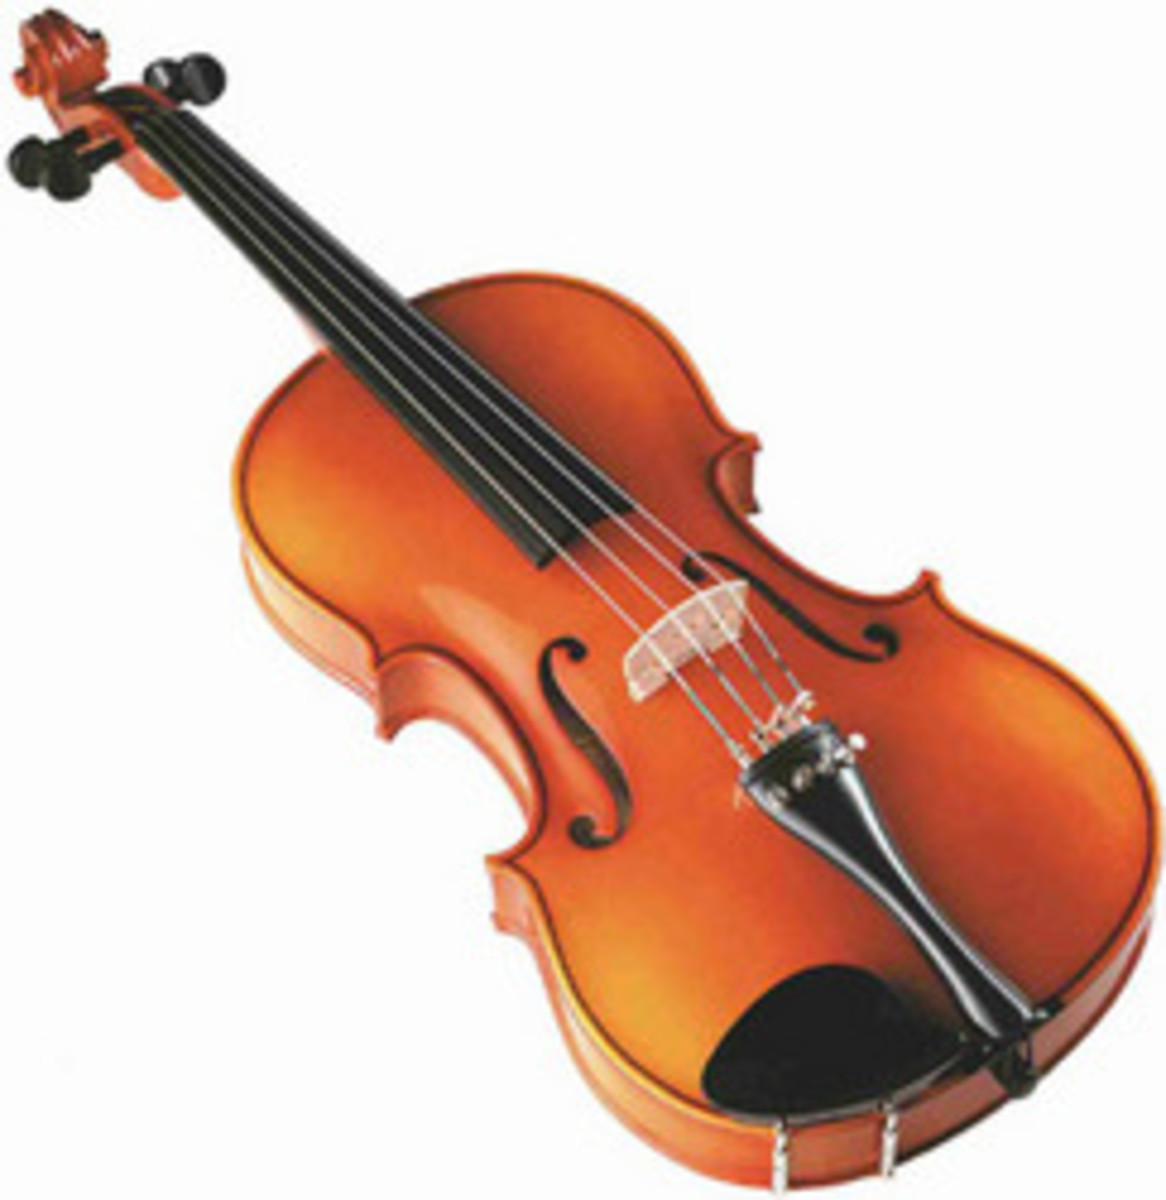 Violin with catgut strings, from trade.indiamart.com